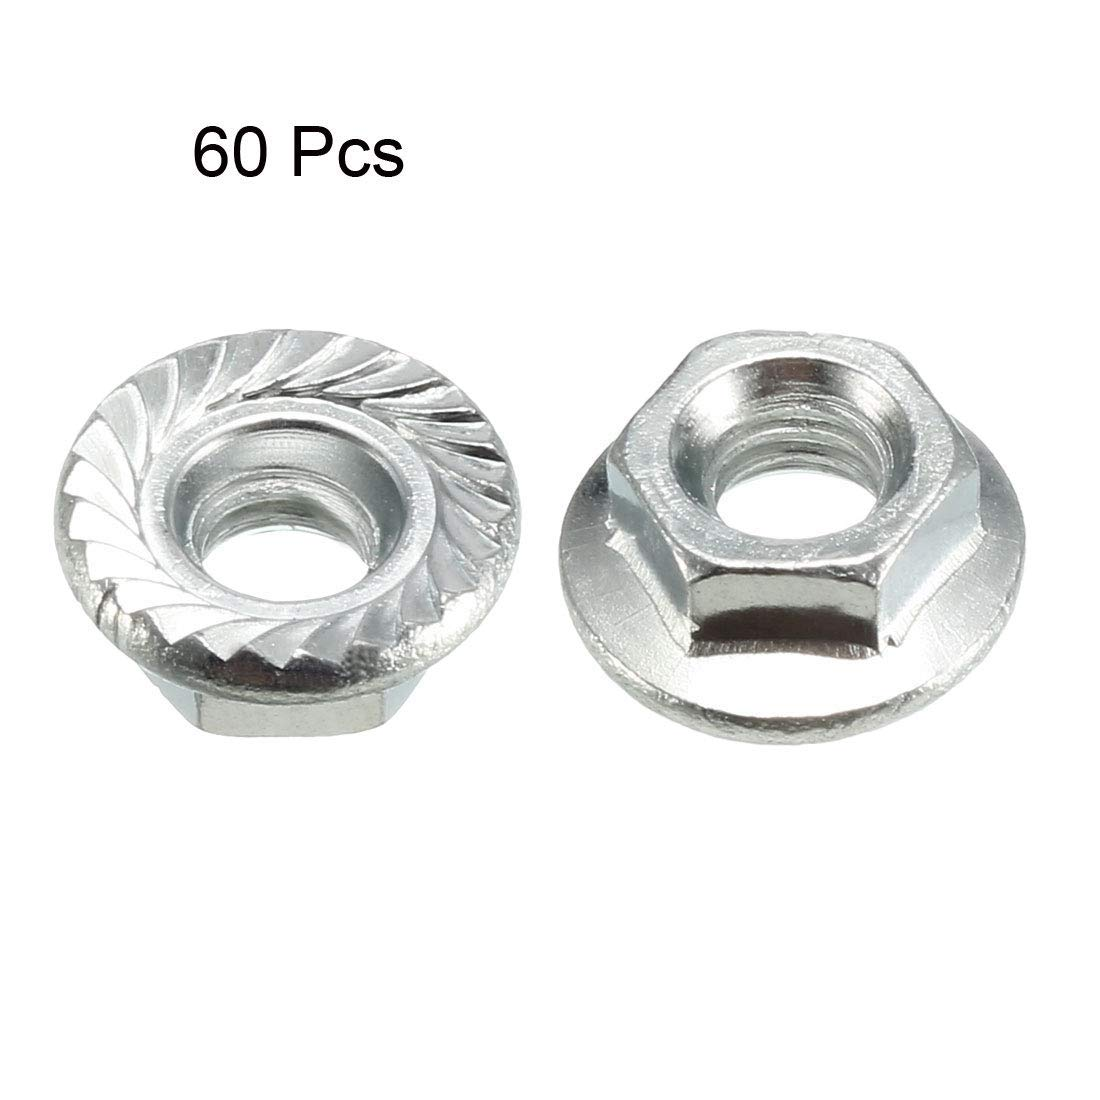 60 Pieces Carbon Steel M4 Toothed Flange Hexagonal Safety Nuts